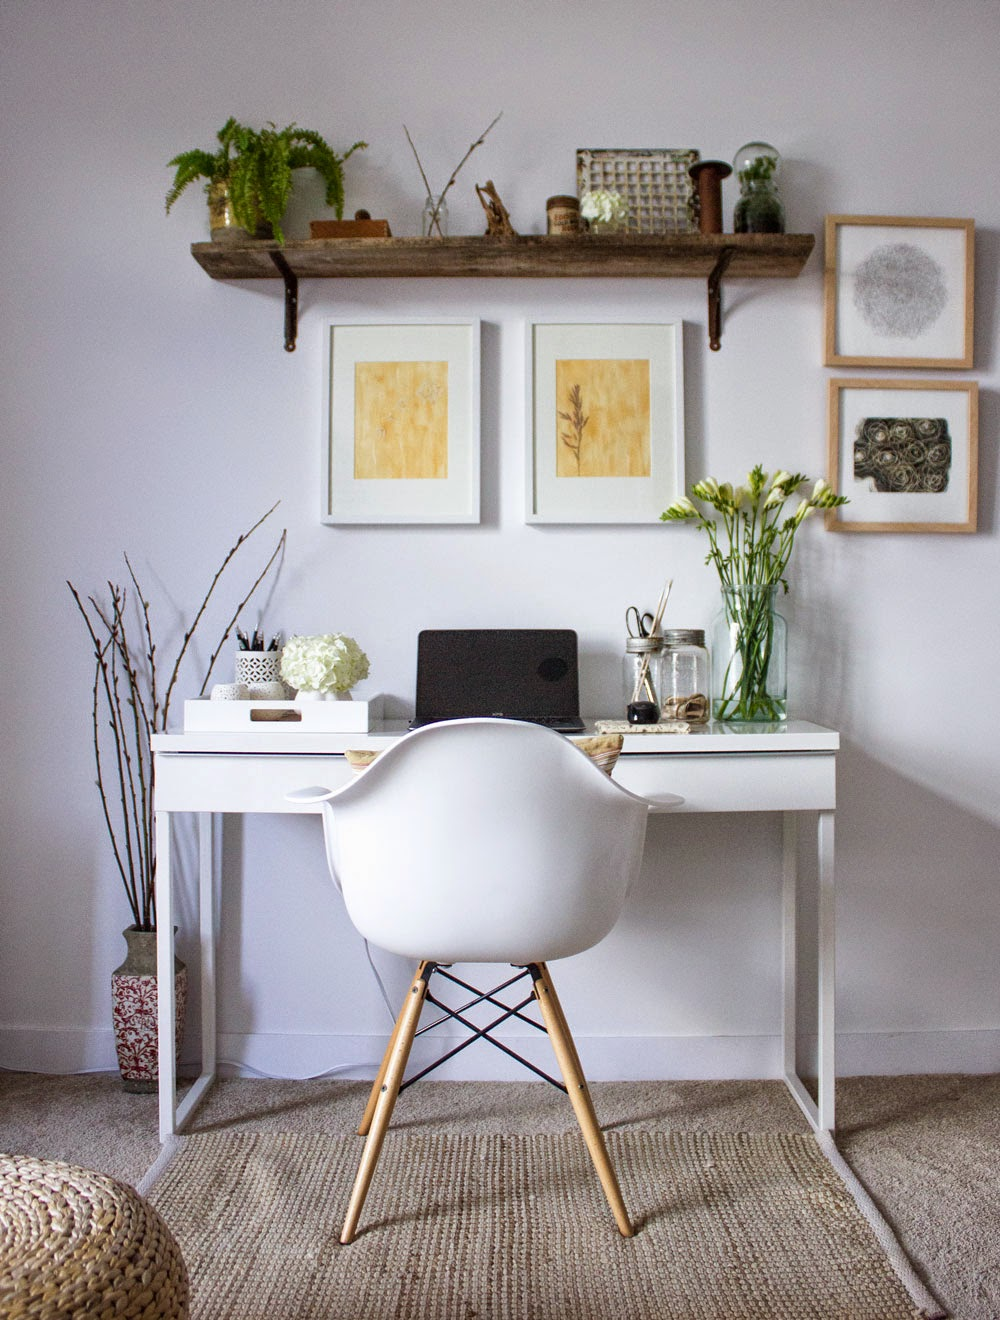 Refreshed Spring Home Workspace